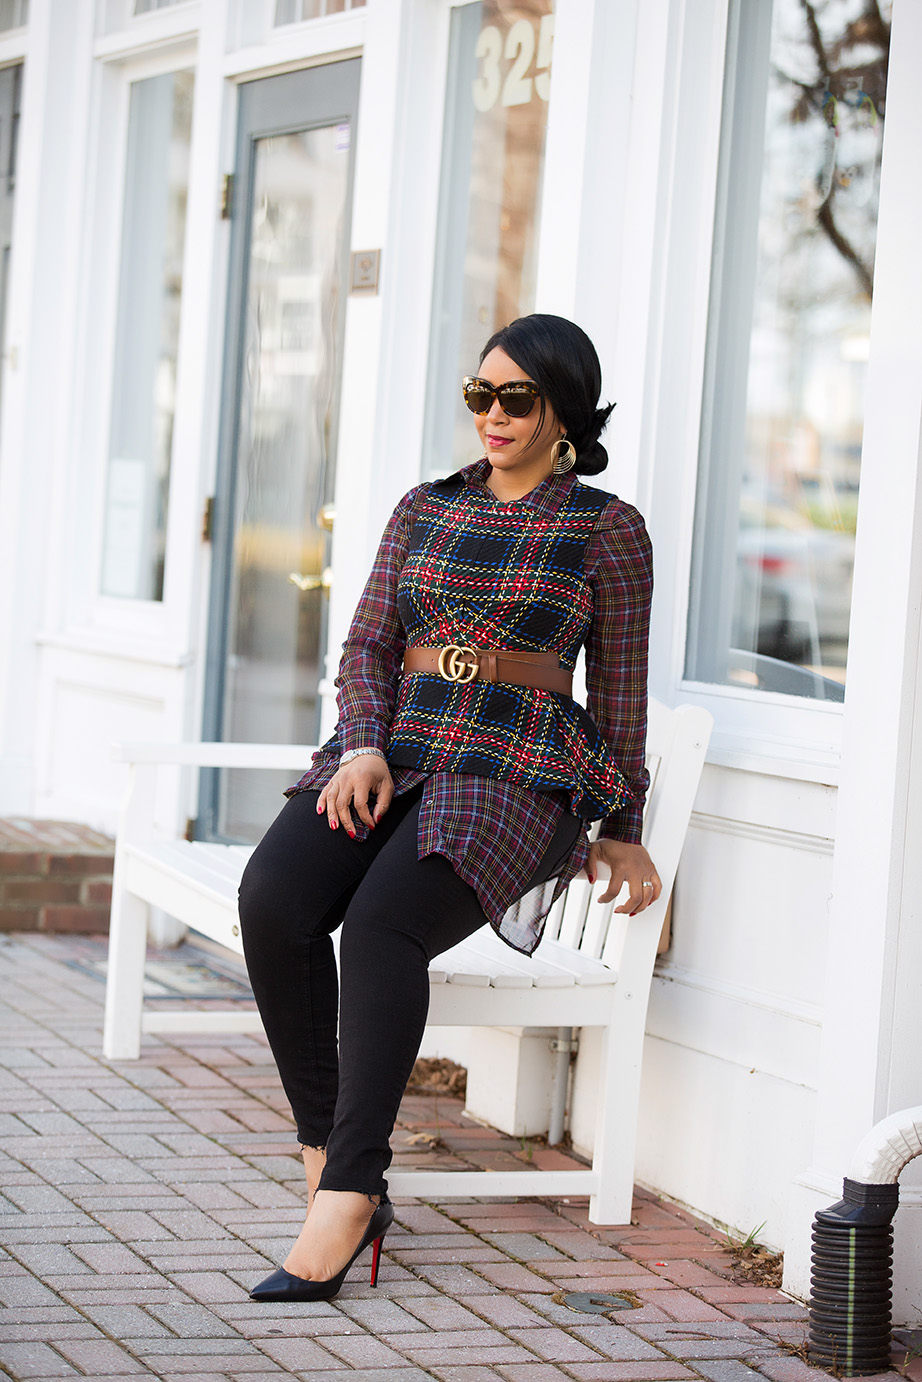 Style in a Cinch: What I'm Wearing - ASOS Tartan Peplum Top, Sheer Plaid Shirt, Gucci Ayers Leather belt with double G buckle, Topshop Step Hem Jeans, Christian Louboutin Pigalle 100 black leather pumps, What's Haute